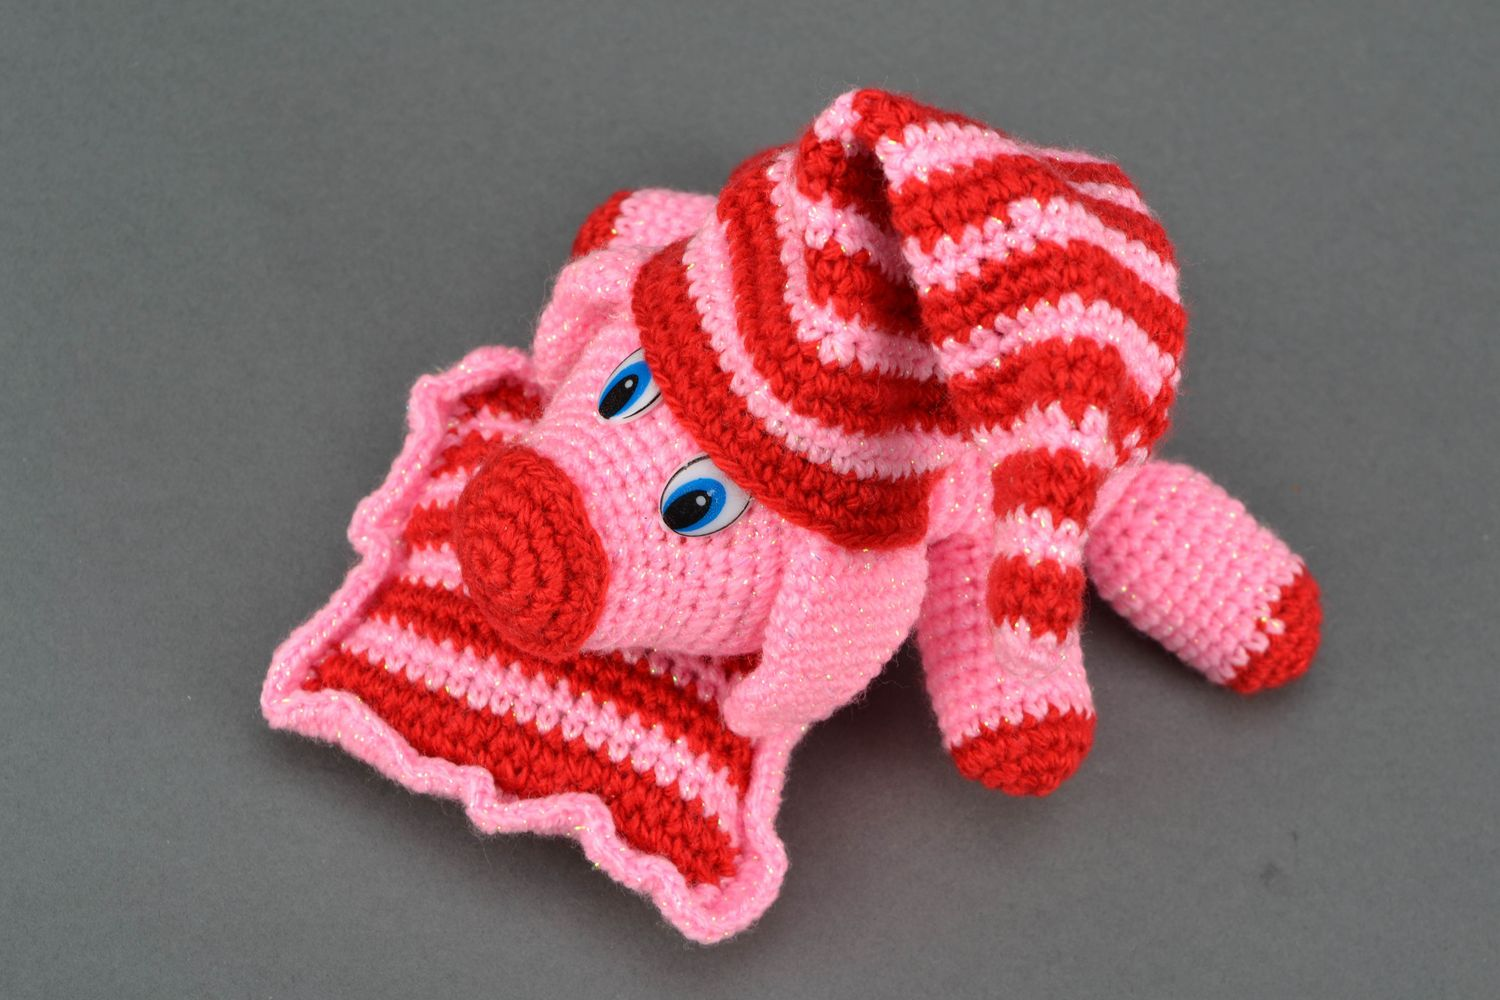 Soft crochet toy Pink Pig on Pillow photo 3